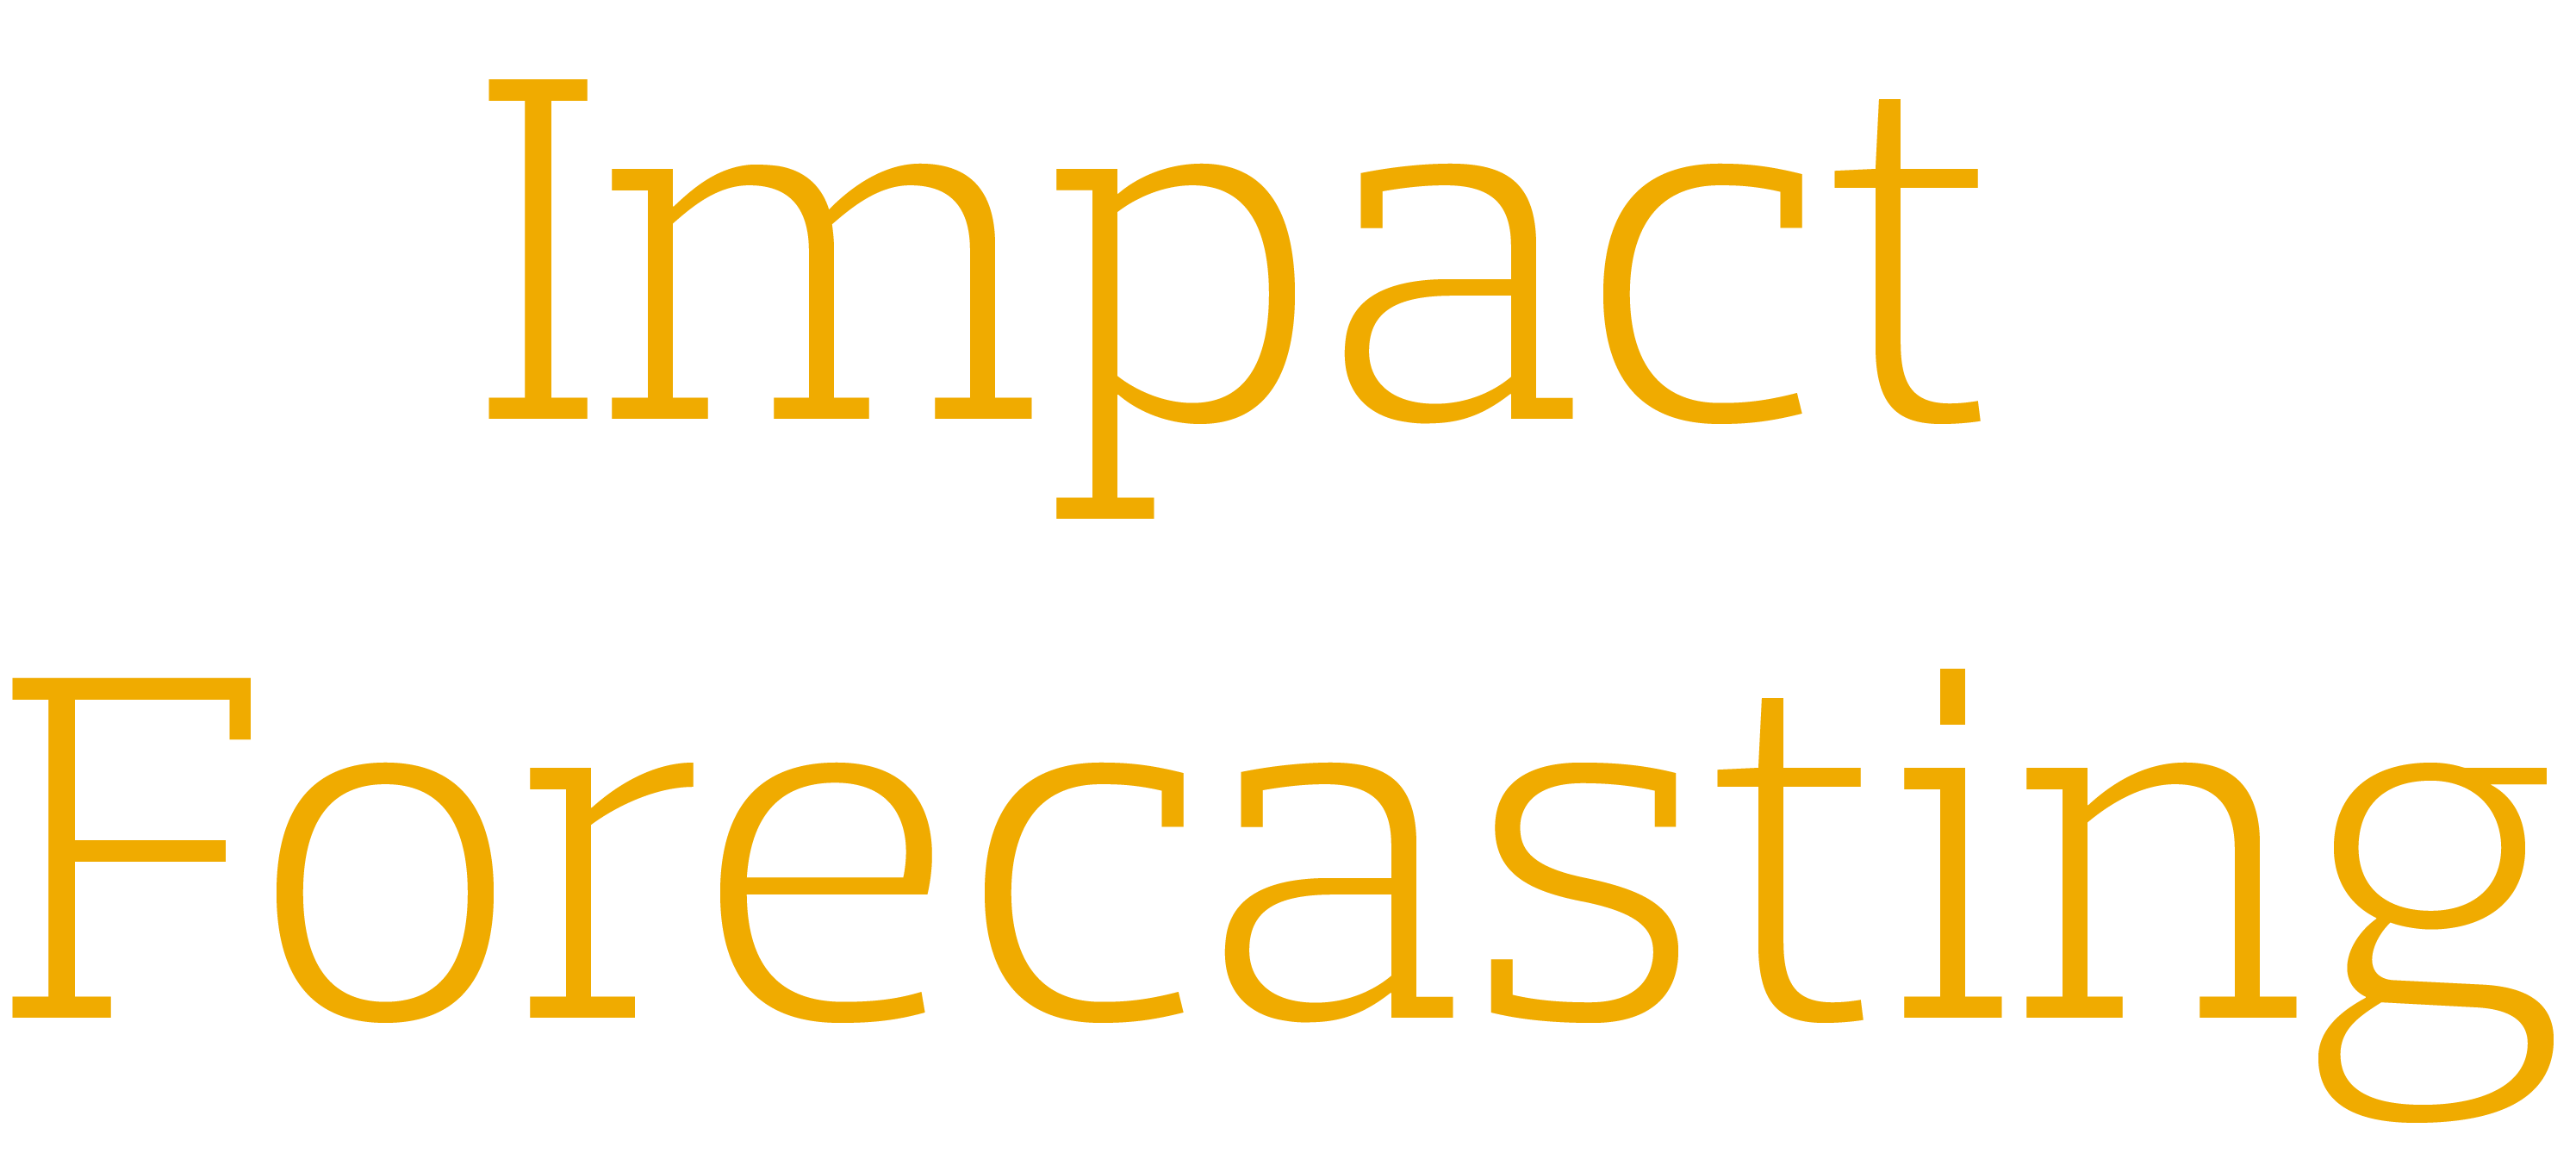 Impact Forecasting - gold text